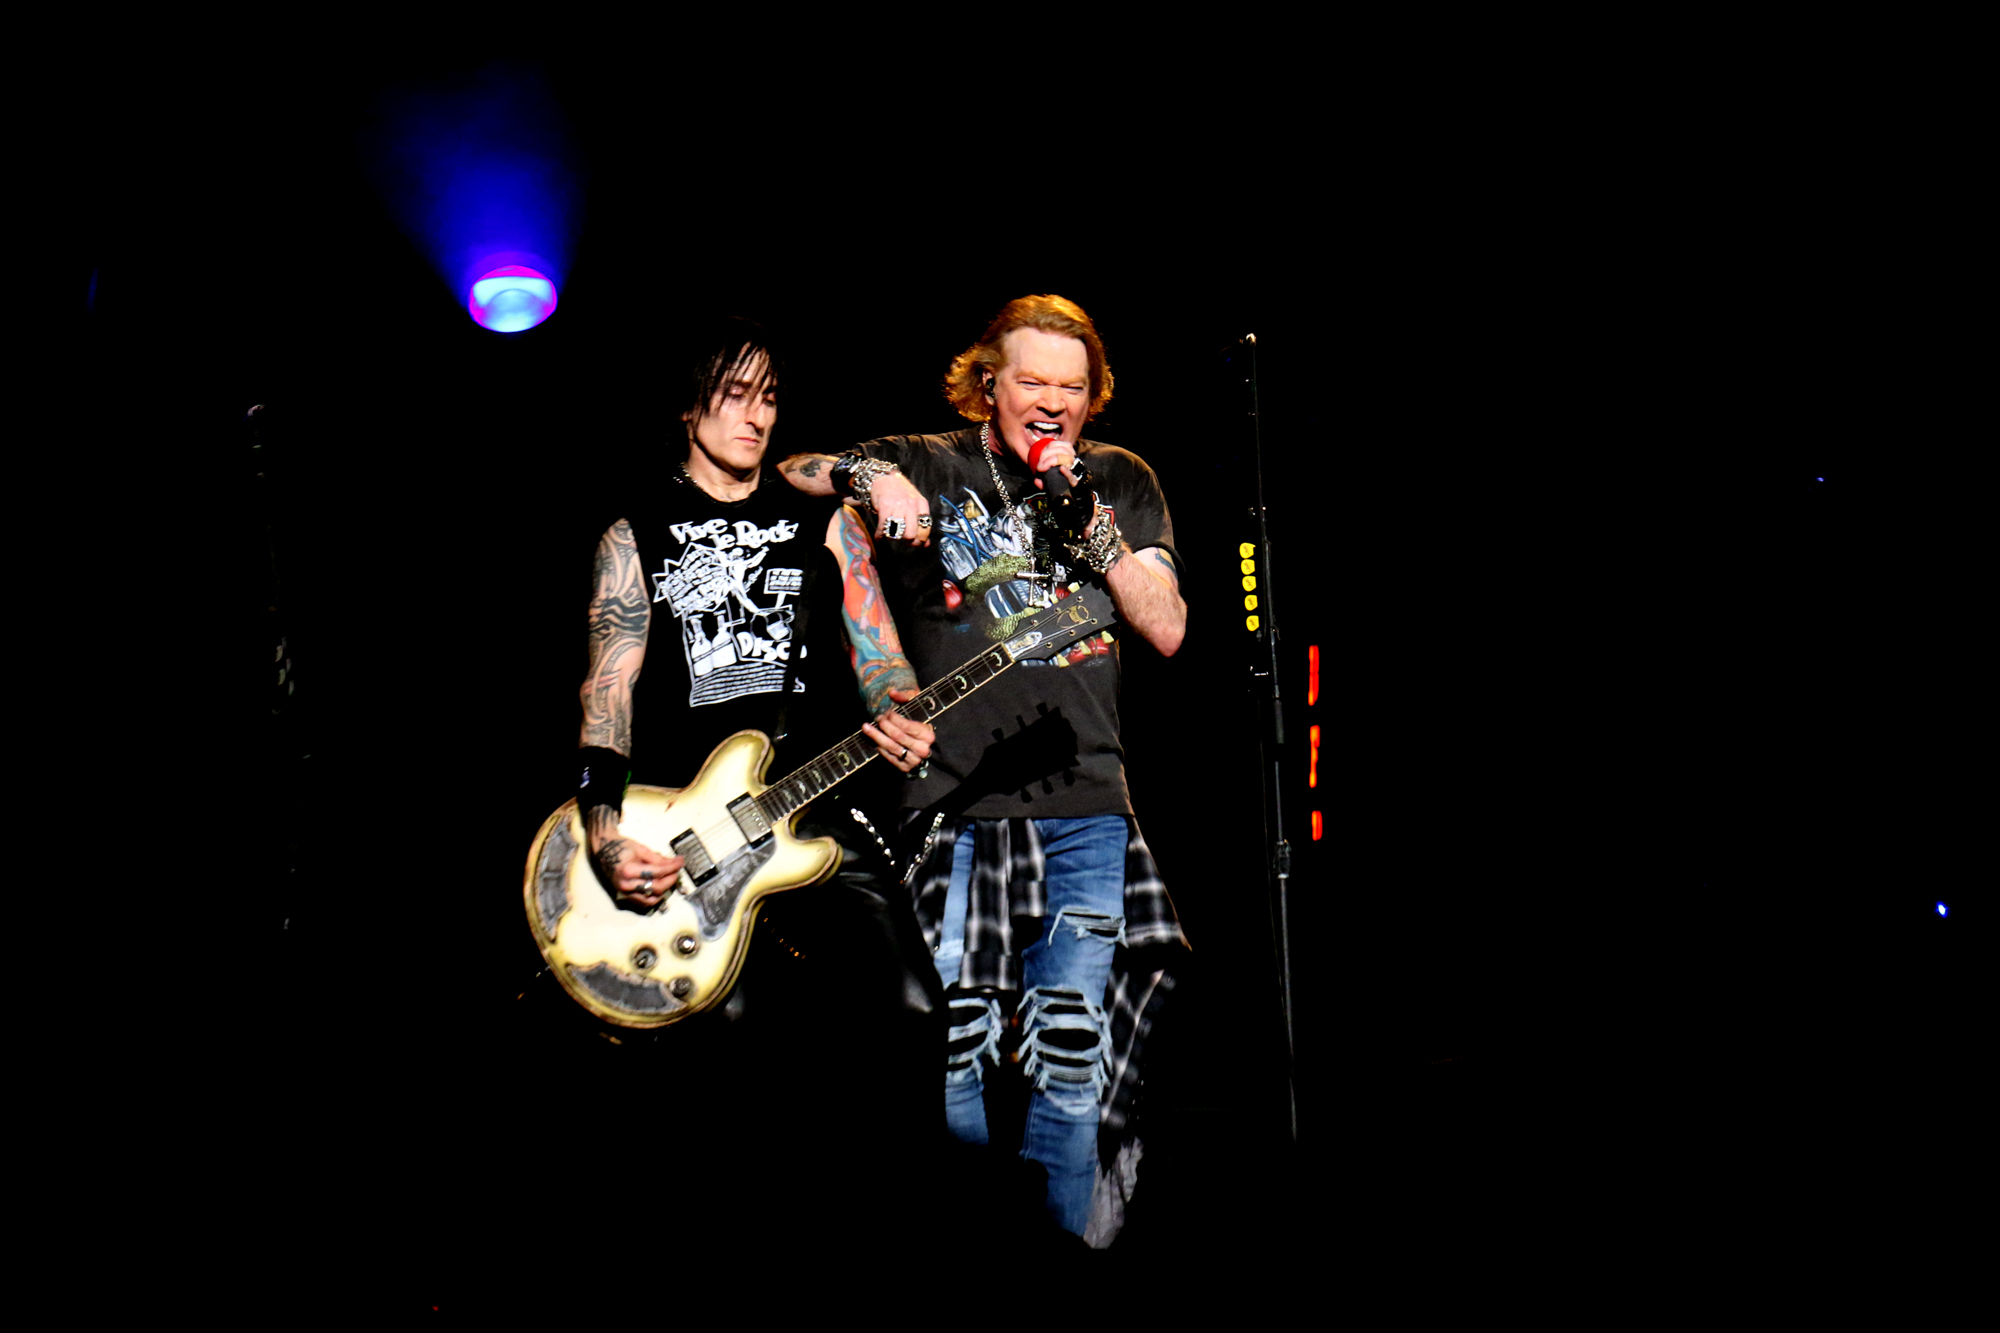 GUNS 'N ROSES END THEIR 3 SOLD OUT SHOWS AT MSG - Pancakes